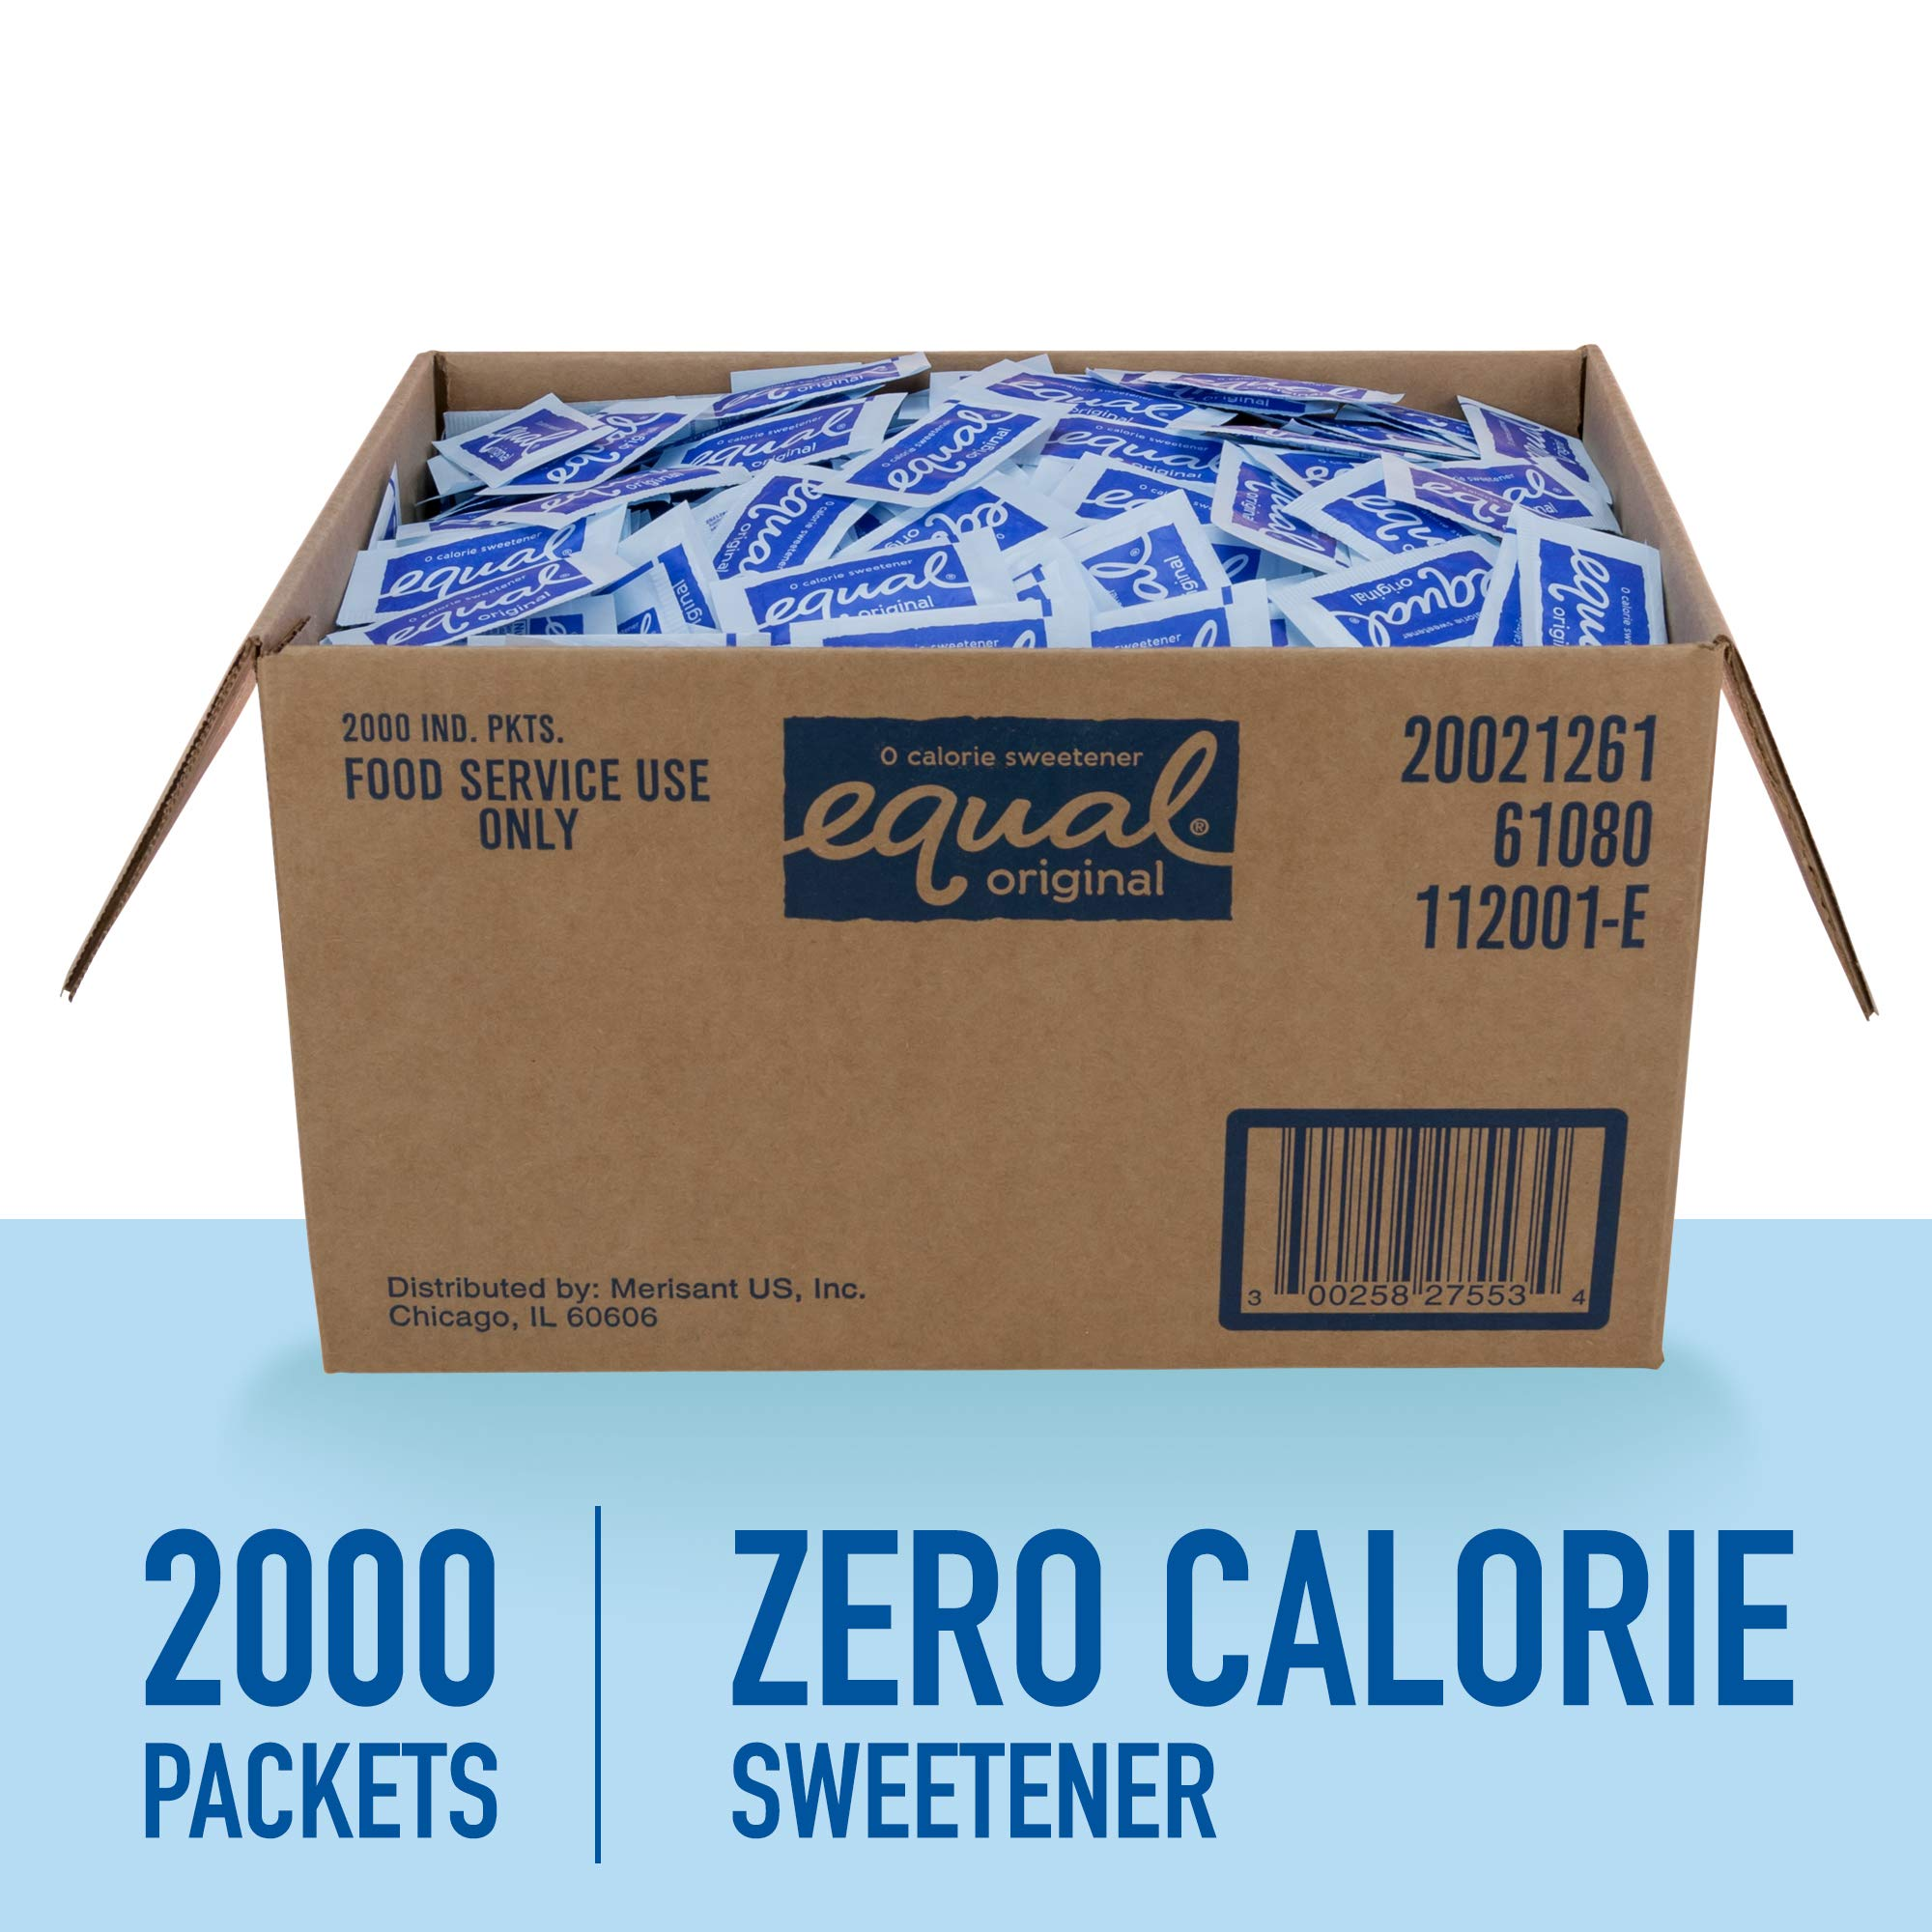 EQUAL 0 Calorie Sweetener, Aspartame Sugar Substitute, Zero Calorie Sugar Free Sweetener Packets, Sugar Alternative, 2,000 Count by Equal